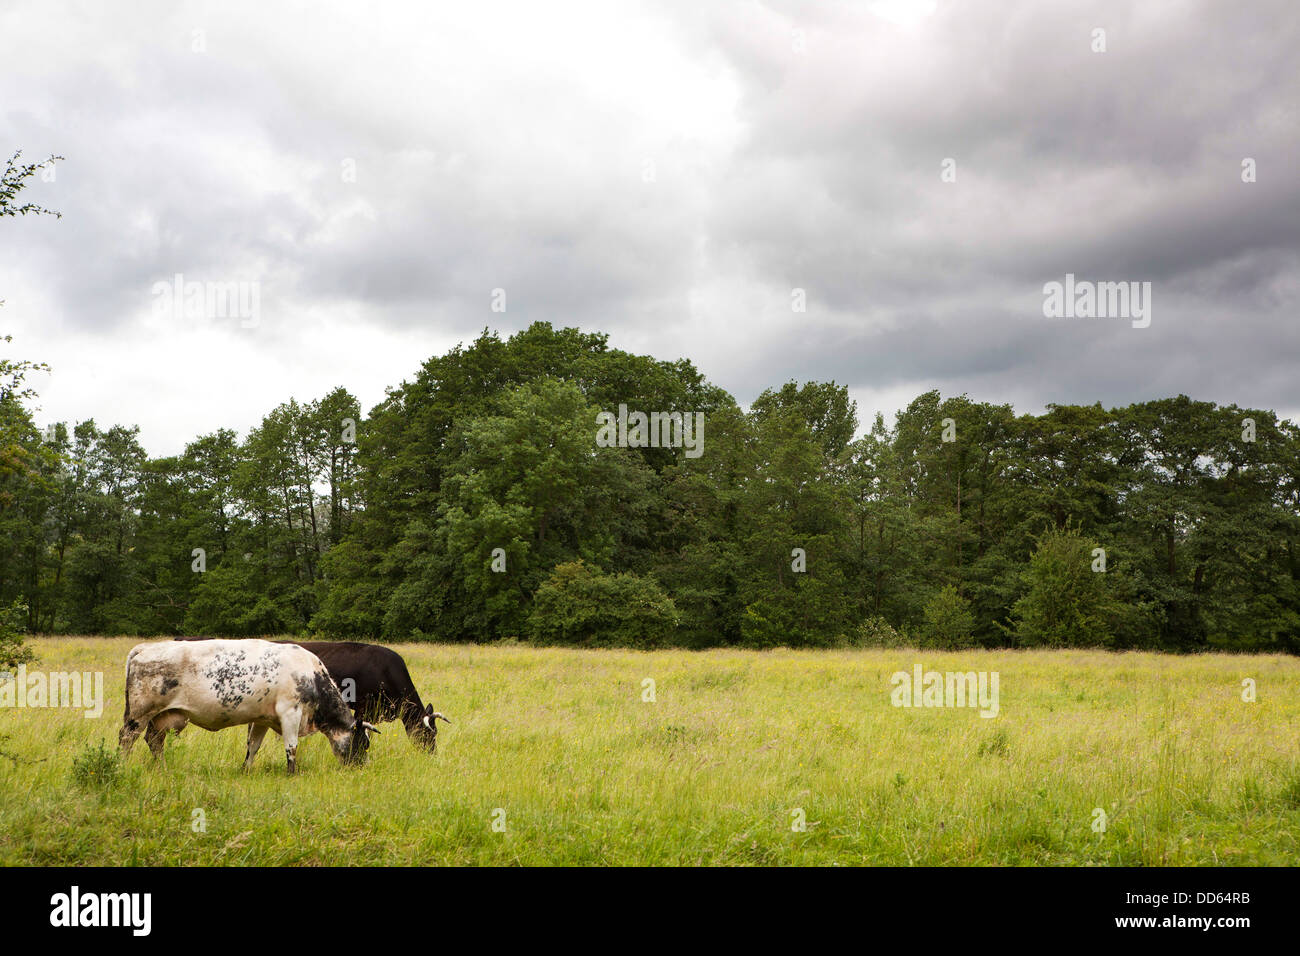 Two Heffer cows grazing/eating grass in an English meadow. Storm clouds gather above the tree line. - Stock Image